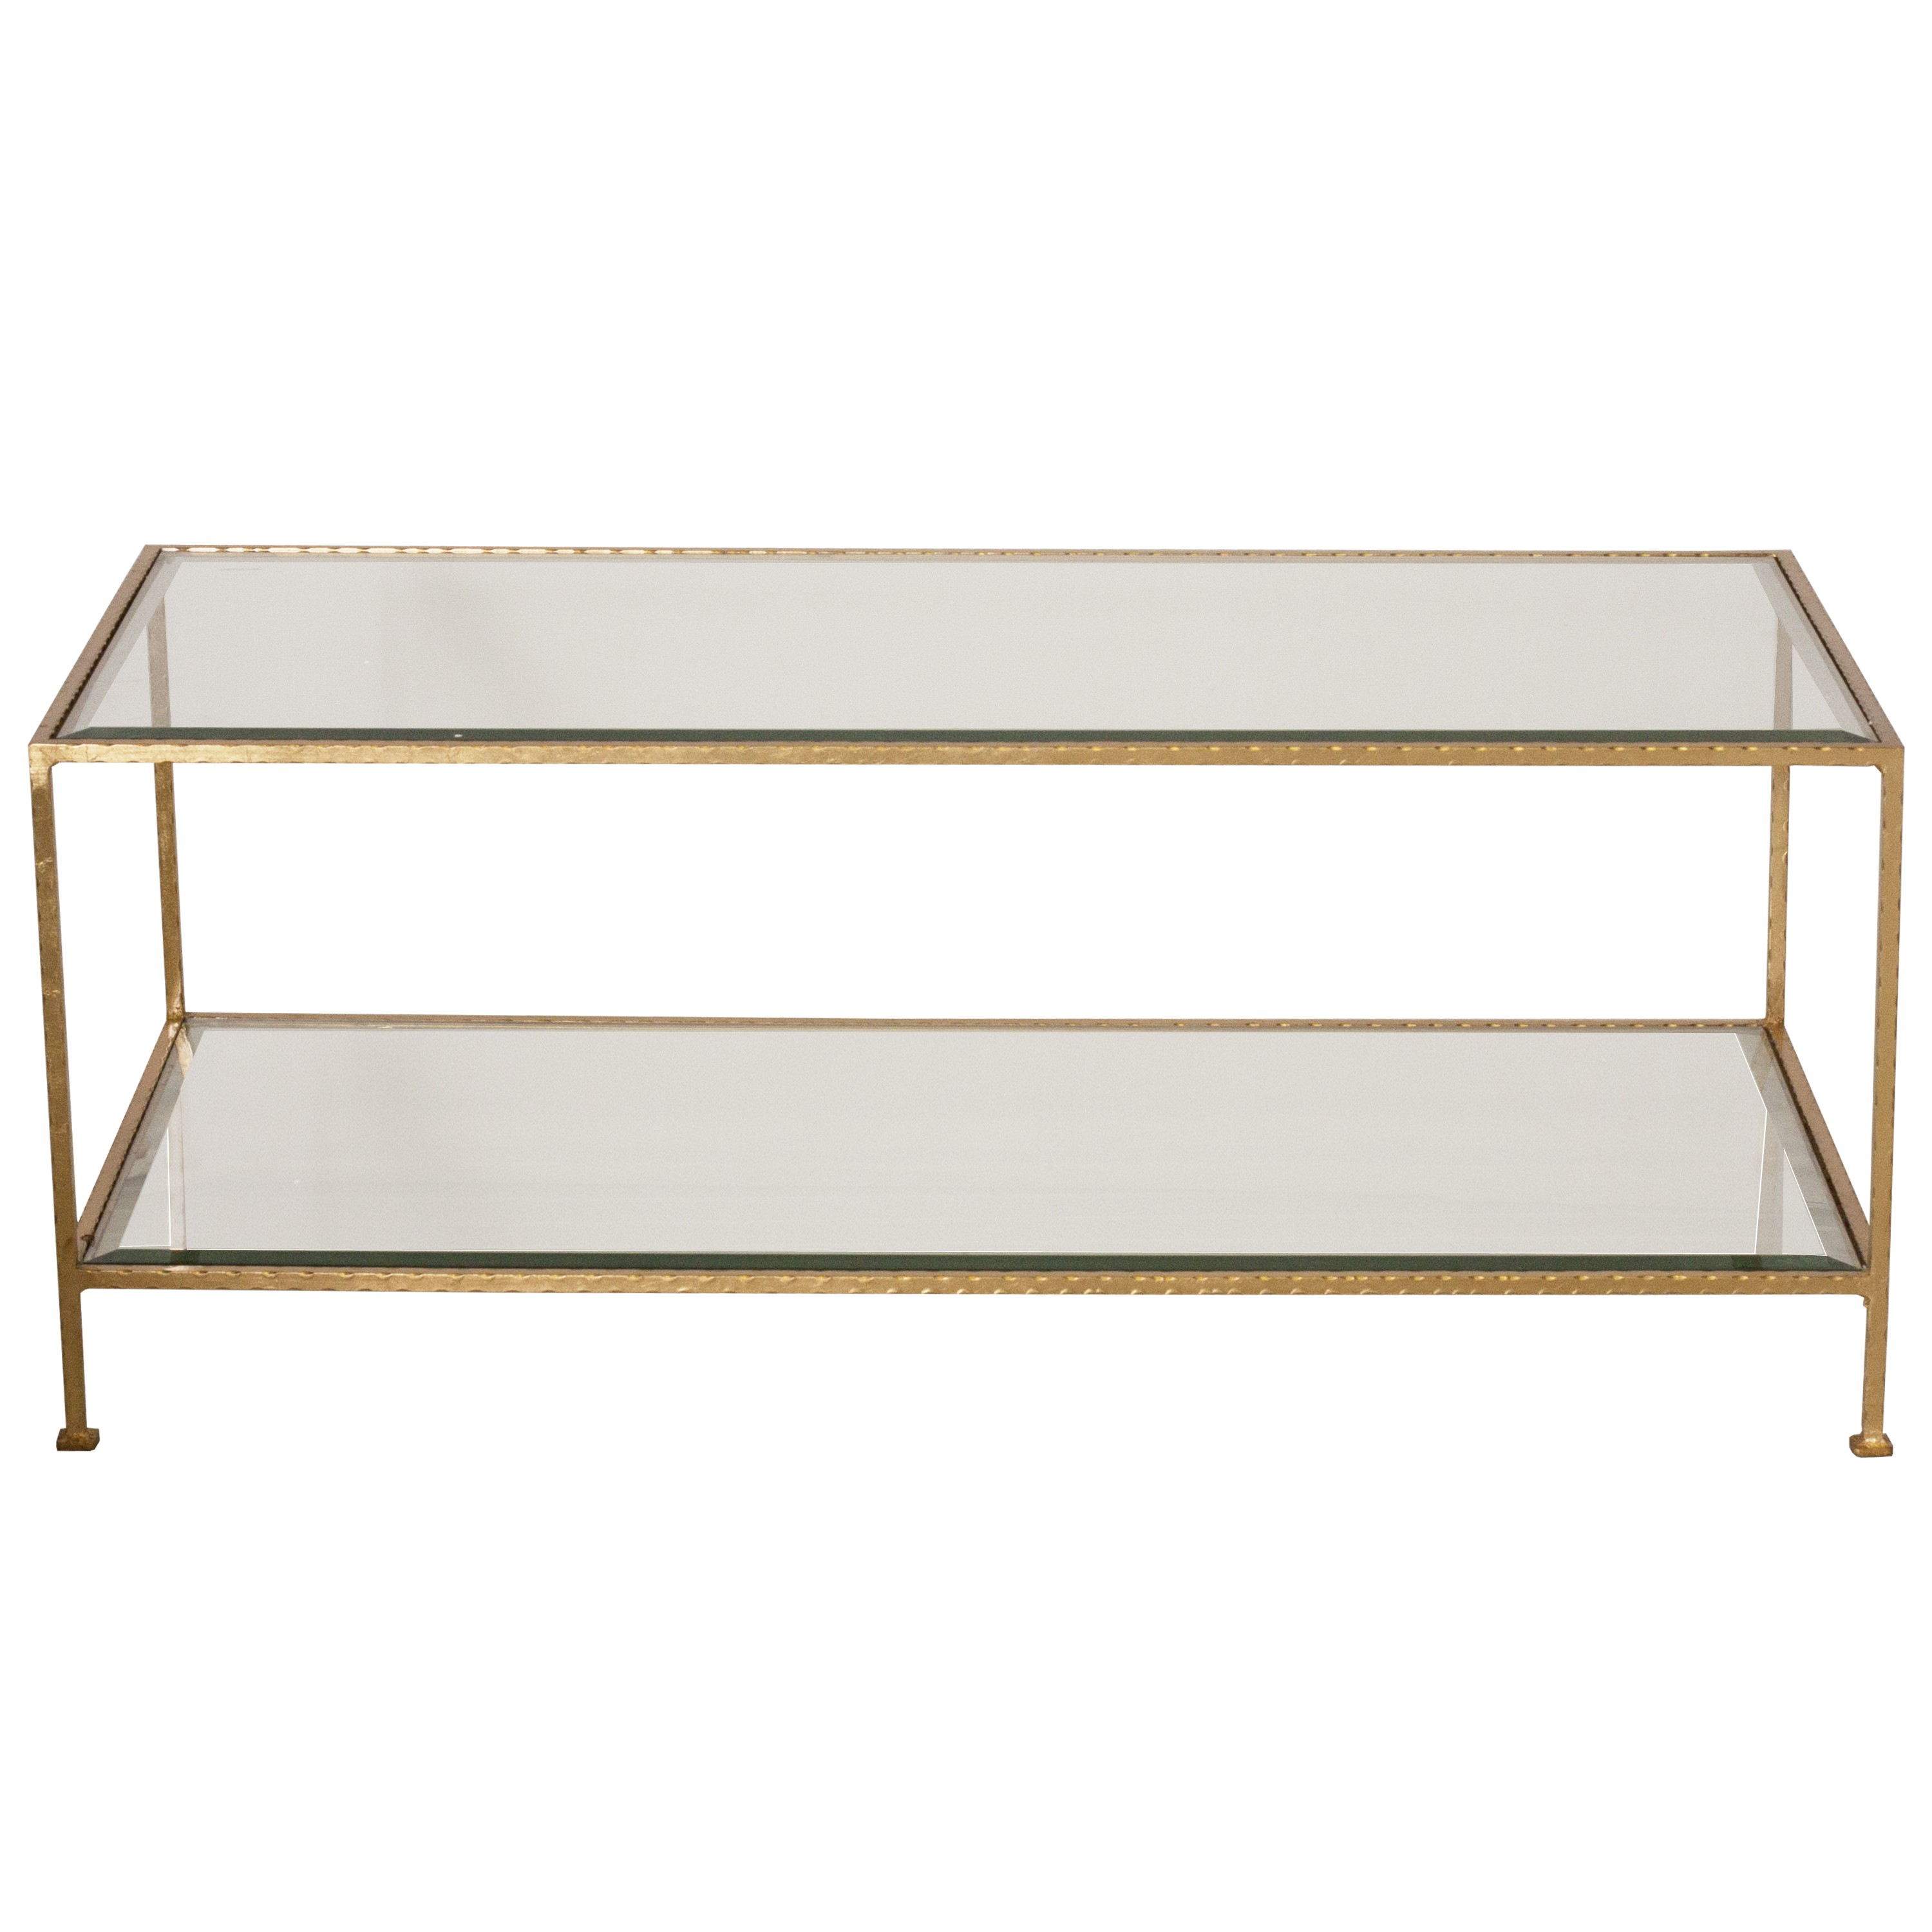 Glass-And-Gold-Coffee-Table-Simple-Woodworking-Projects-For-Cub-Scouts-Console-Tables-All-Narcissist-and-Nemesis-Family (Image 7 of 10)